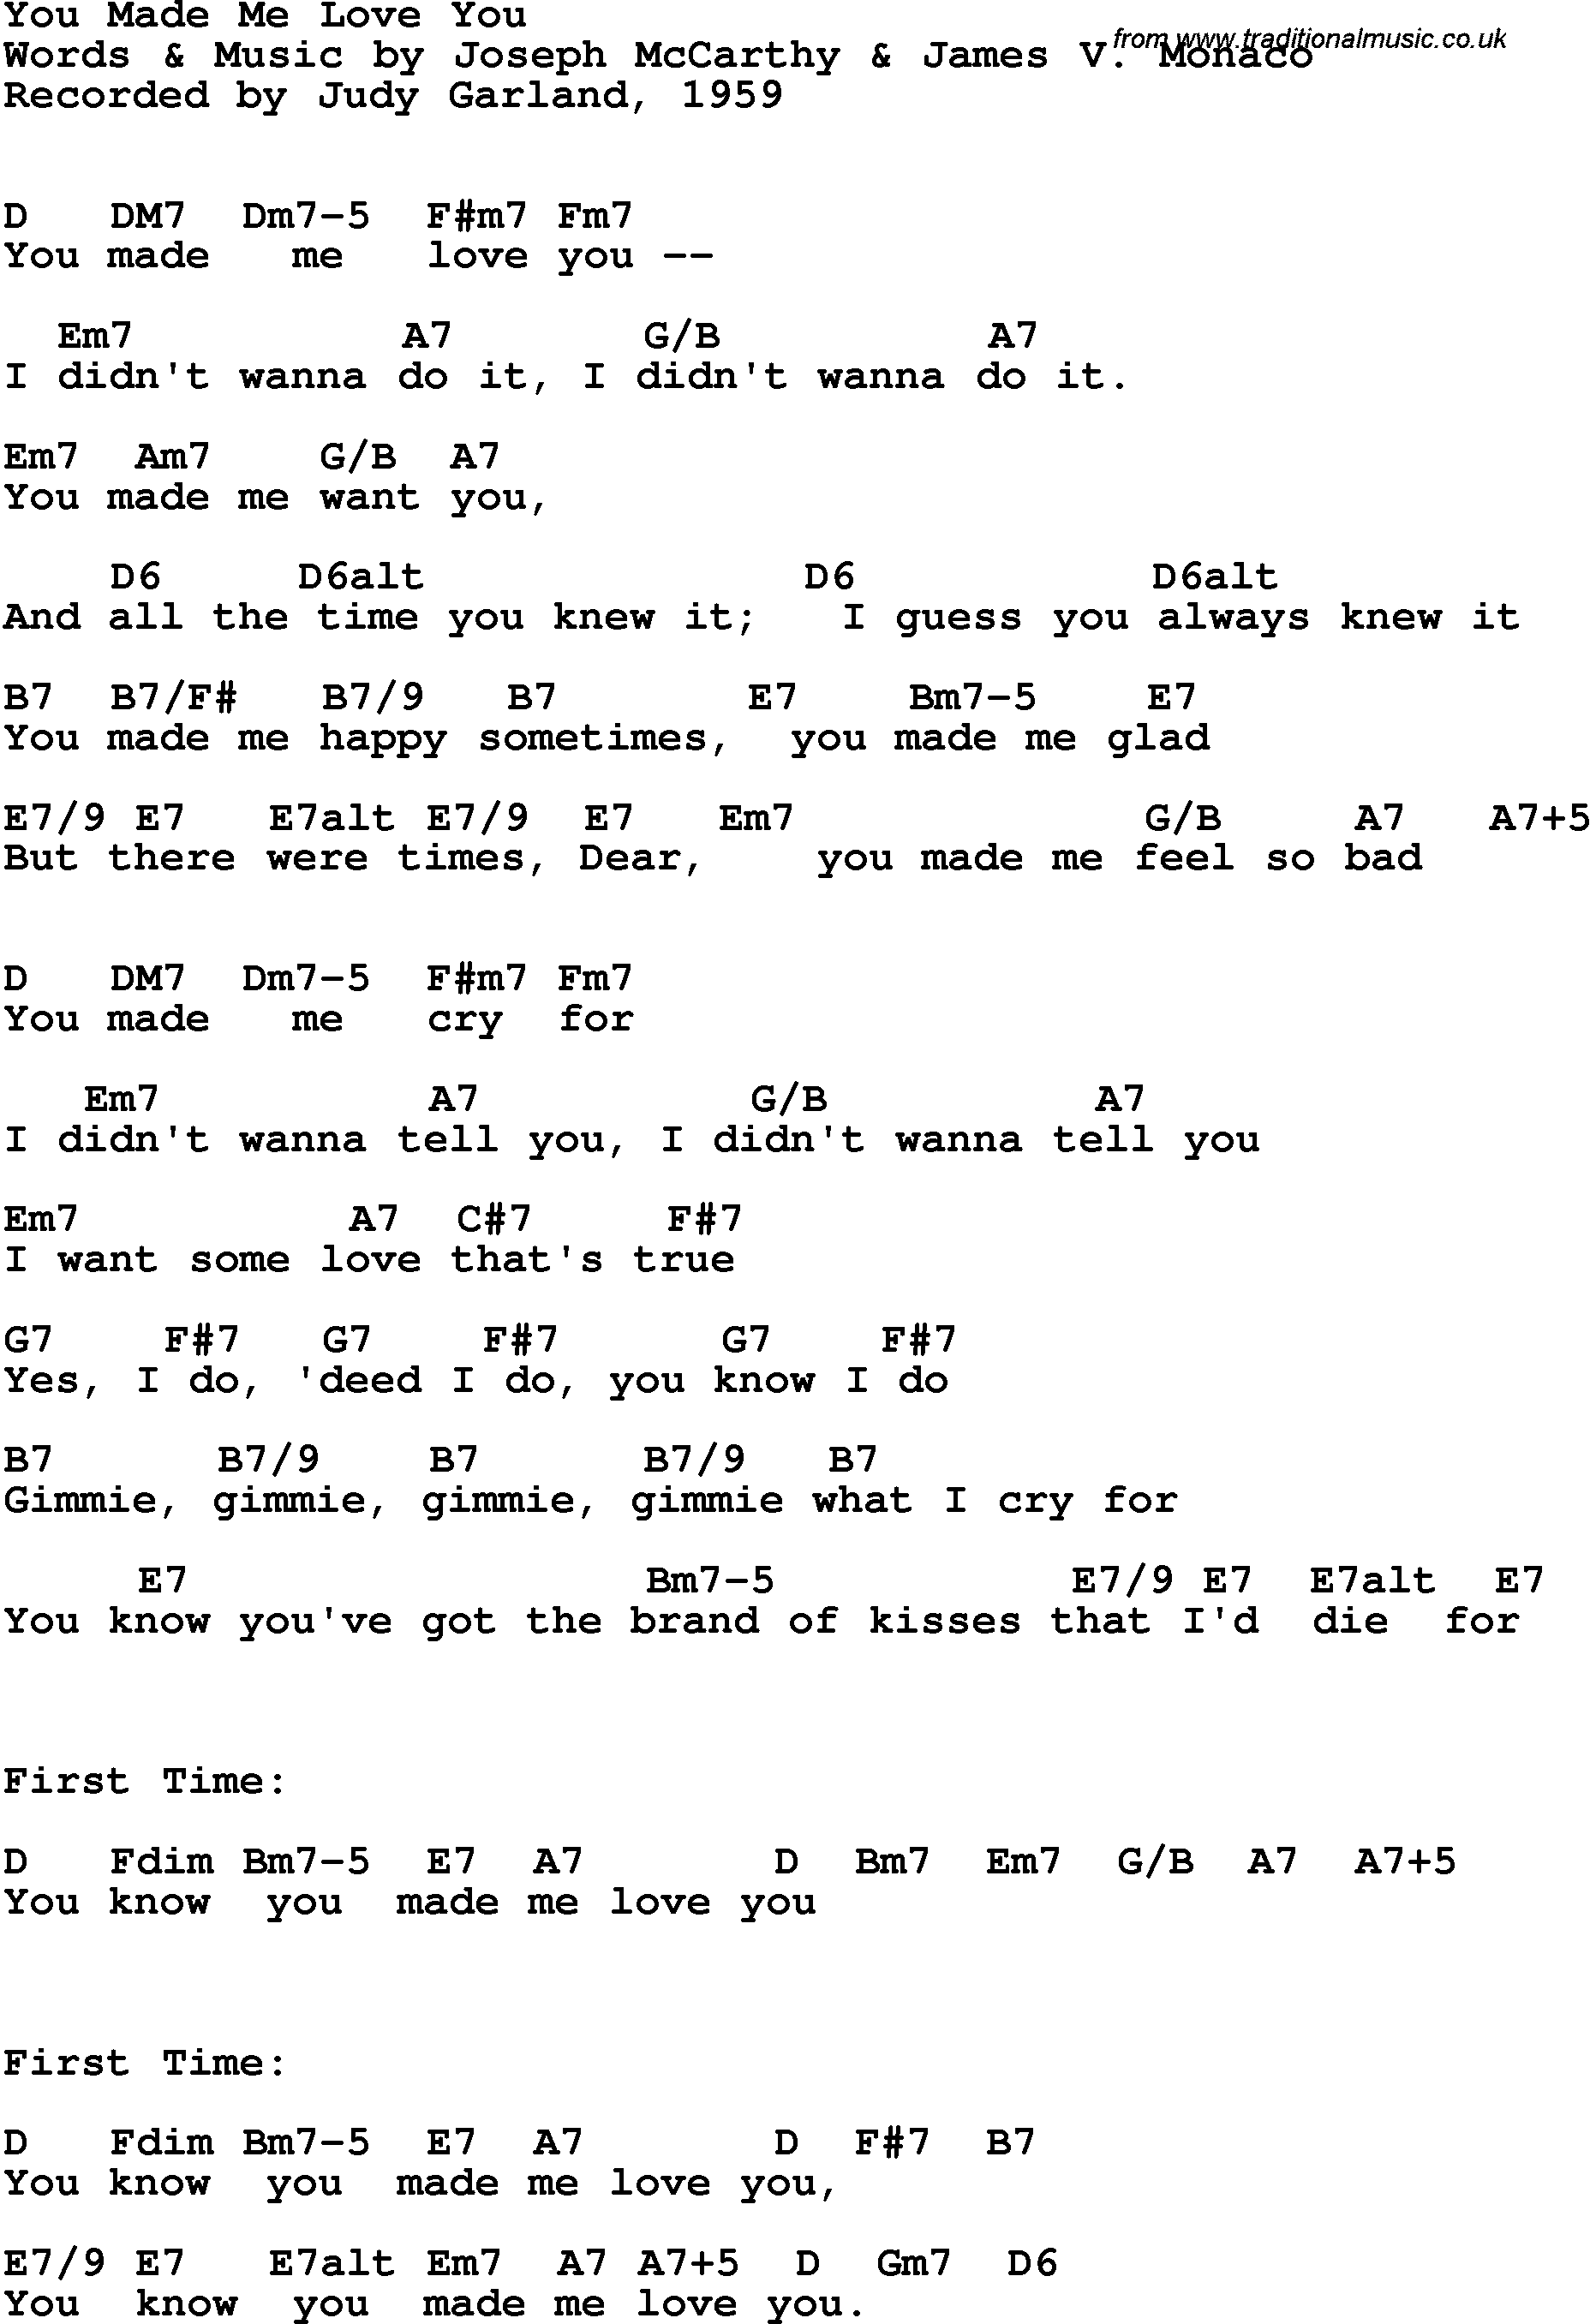 Song lyrics with guitar chords for You Made Me Love You - Judy Garland, 1959